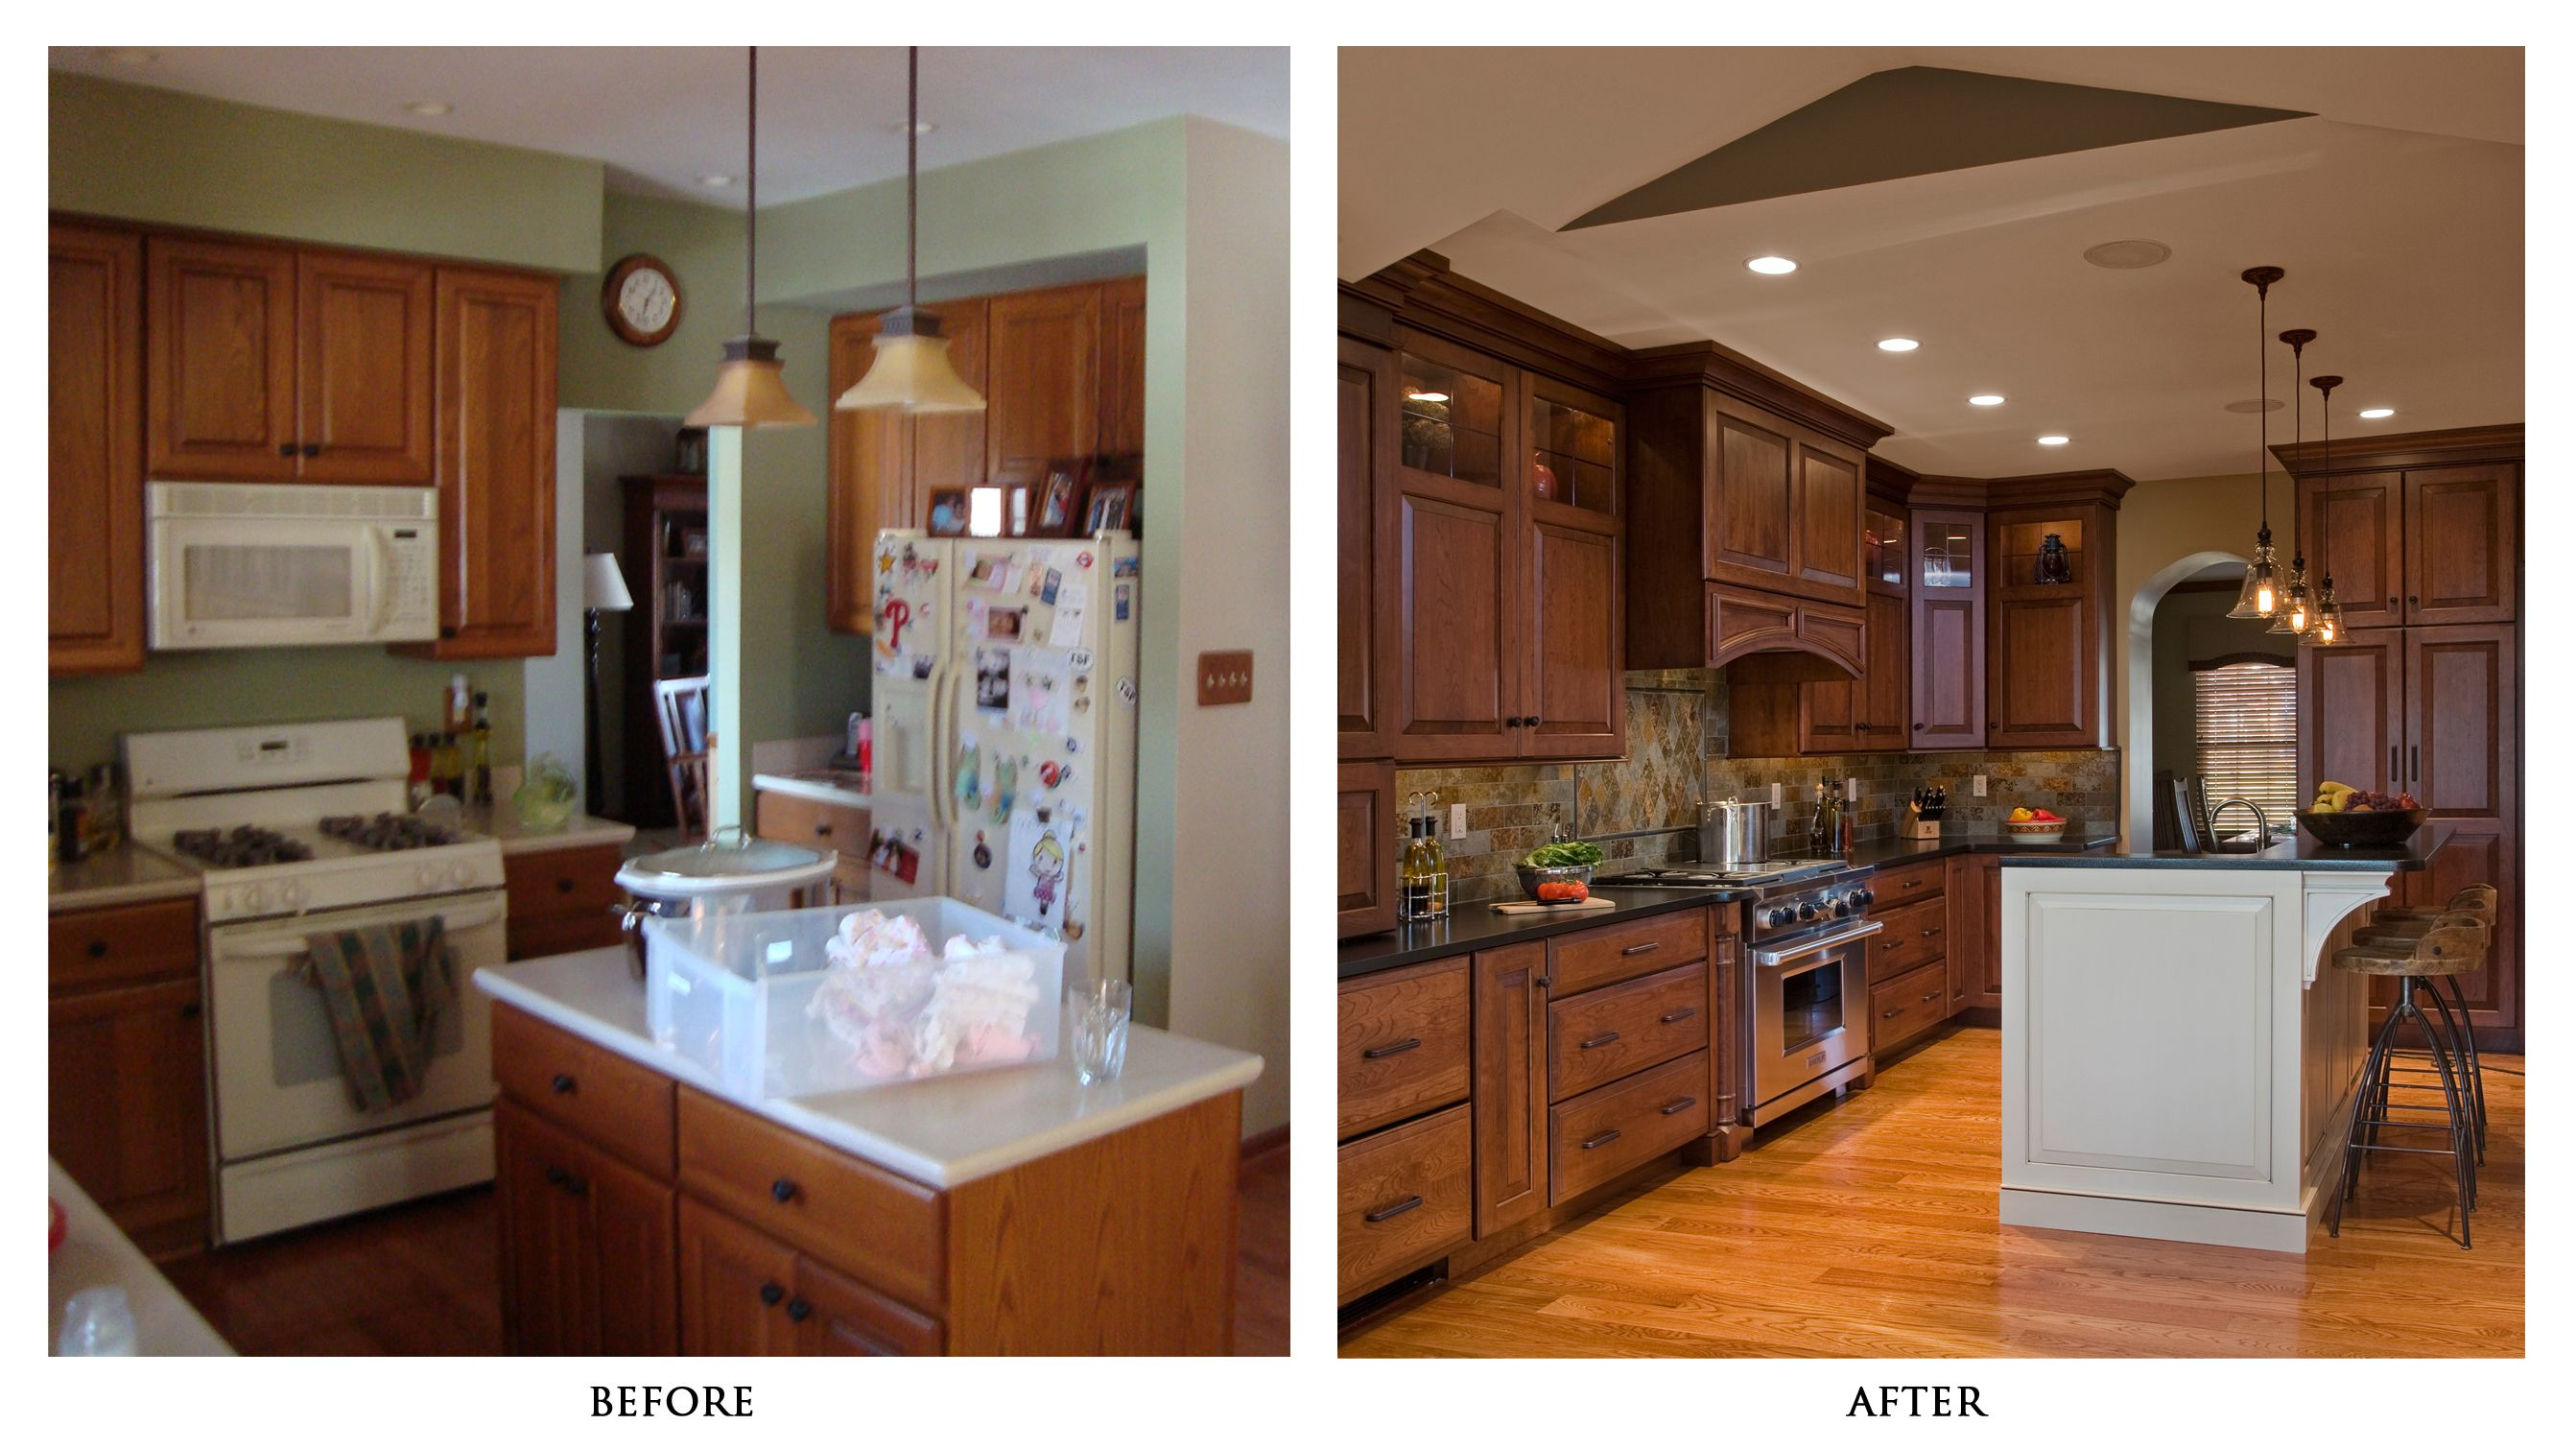 High Quality Kitchen Remodels Before And After Photos Nice Look